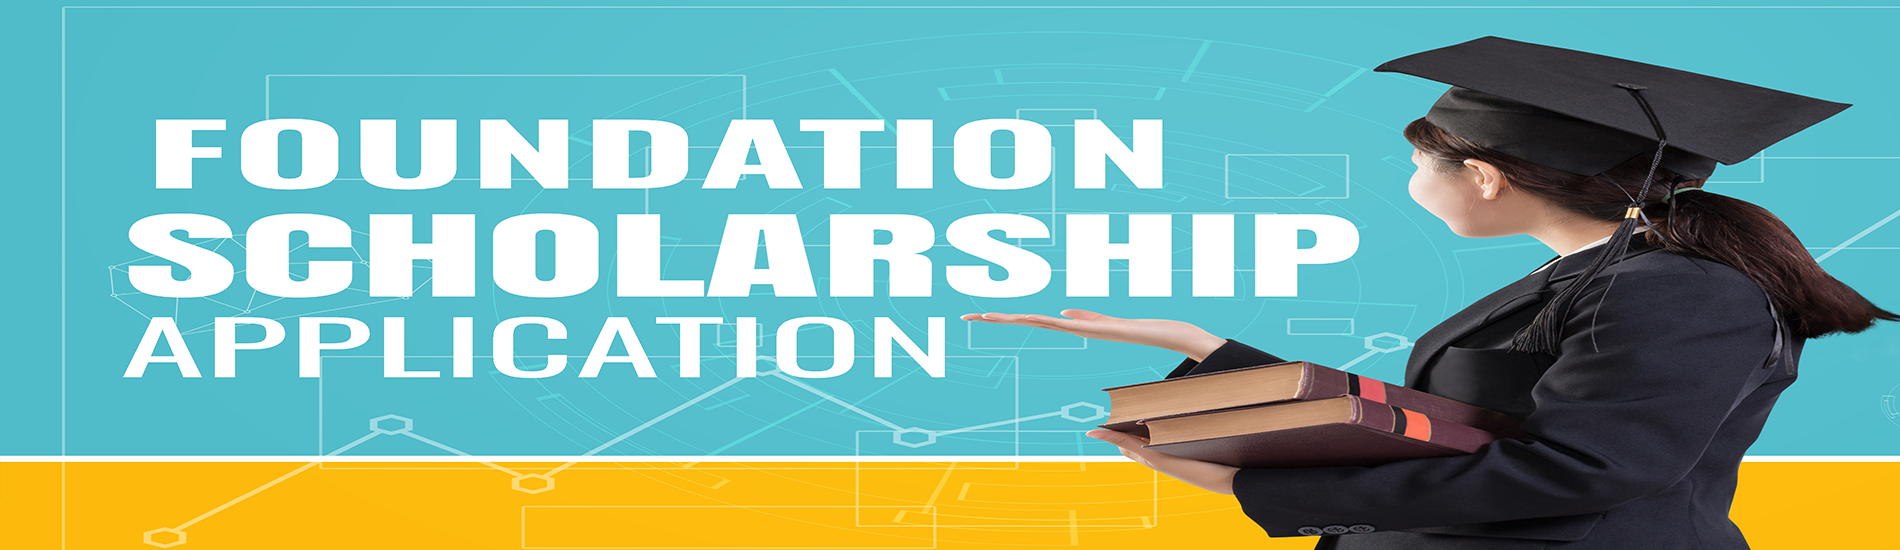 Foundation Scholarship Application